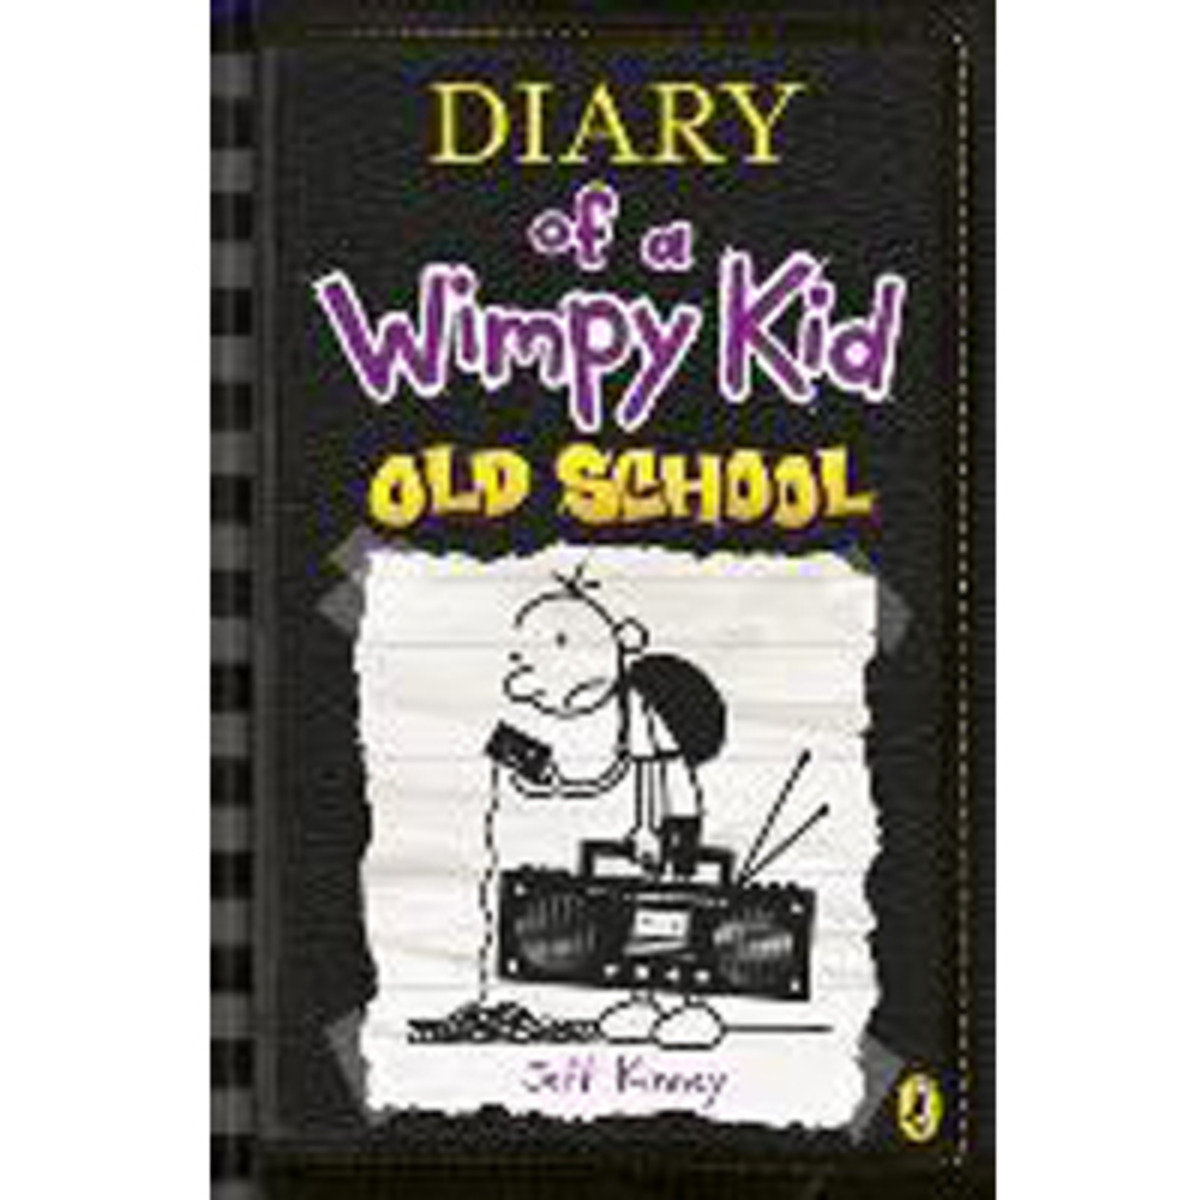 Diary of a Wimpy Kid #10 Old School